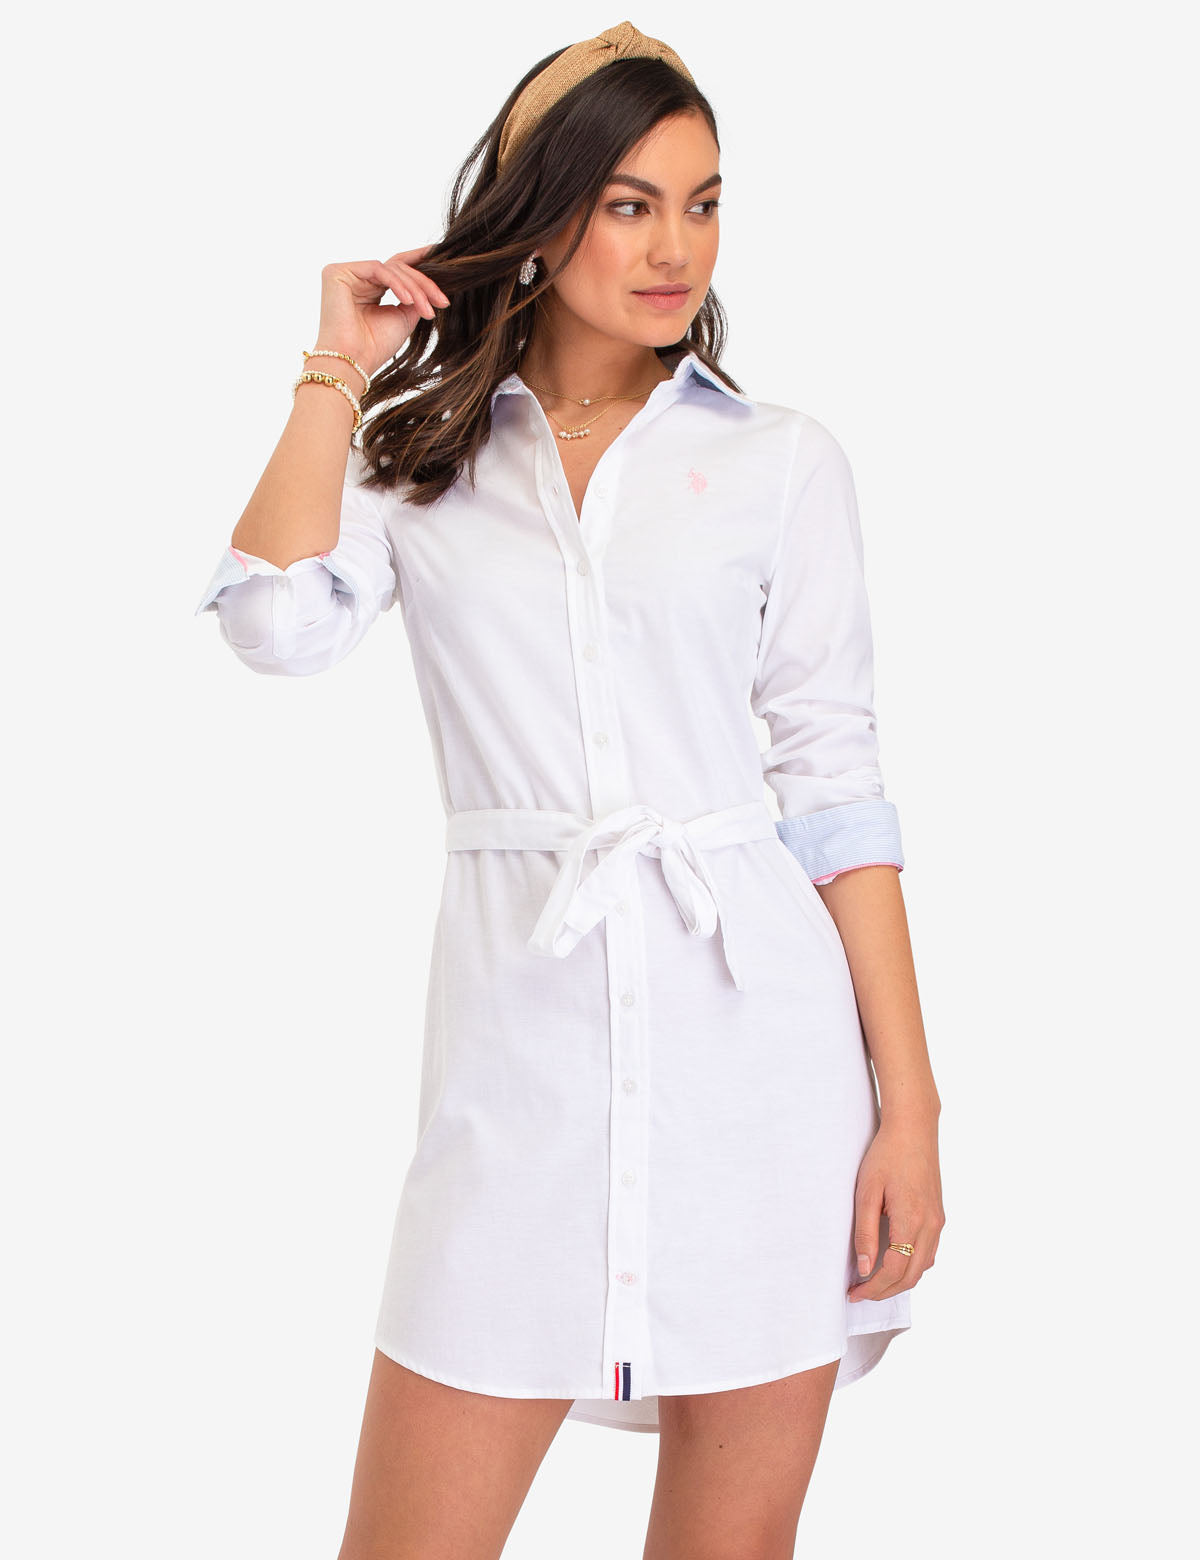 SOLID OXFORD DRESS - U.S. Polo Assn.